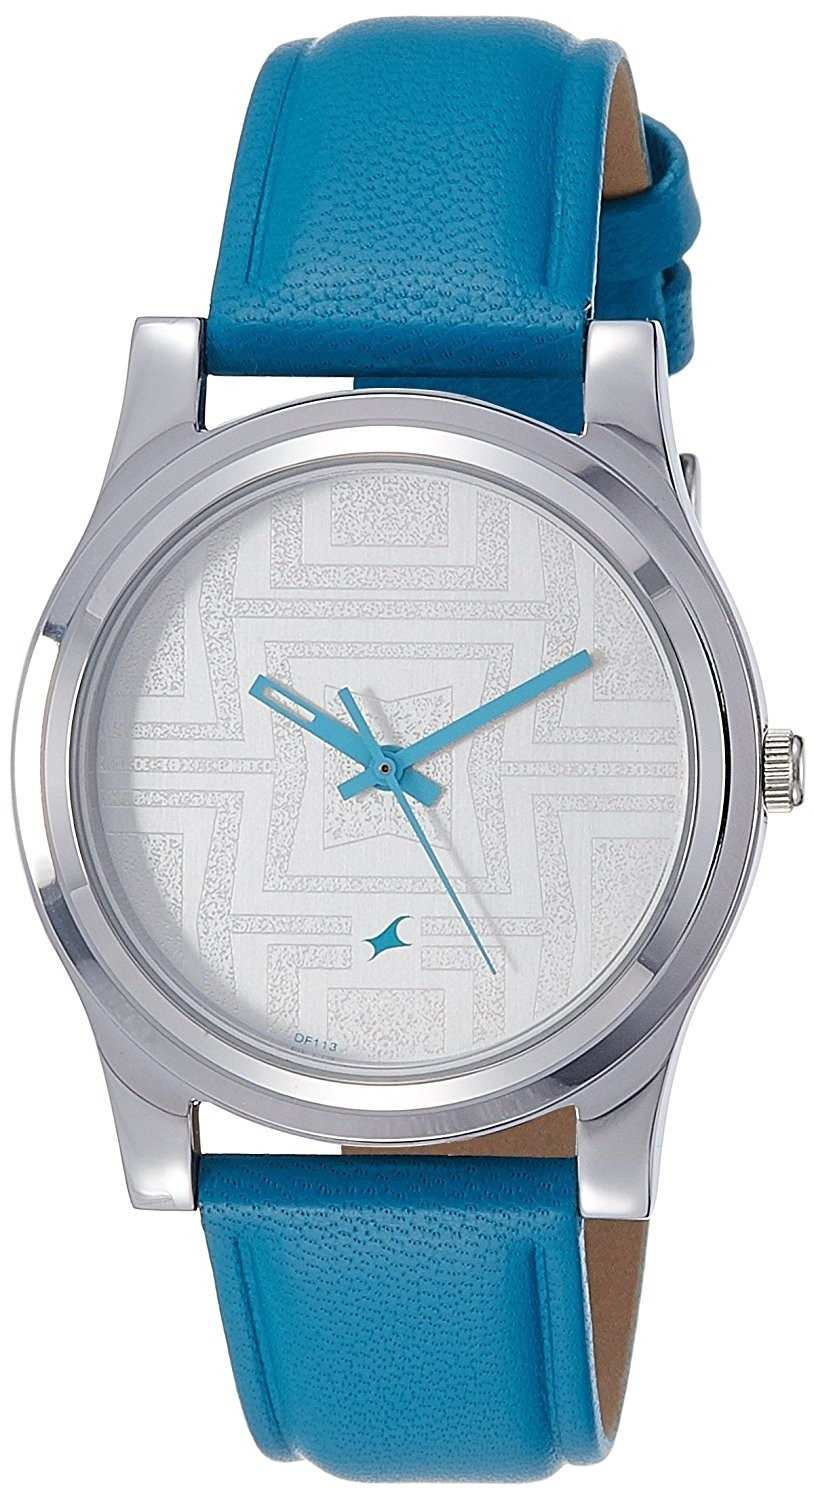 Blue Women Silver-Toned Textured Dial Watch For Women